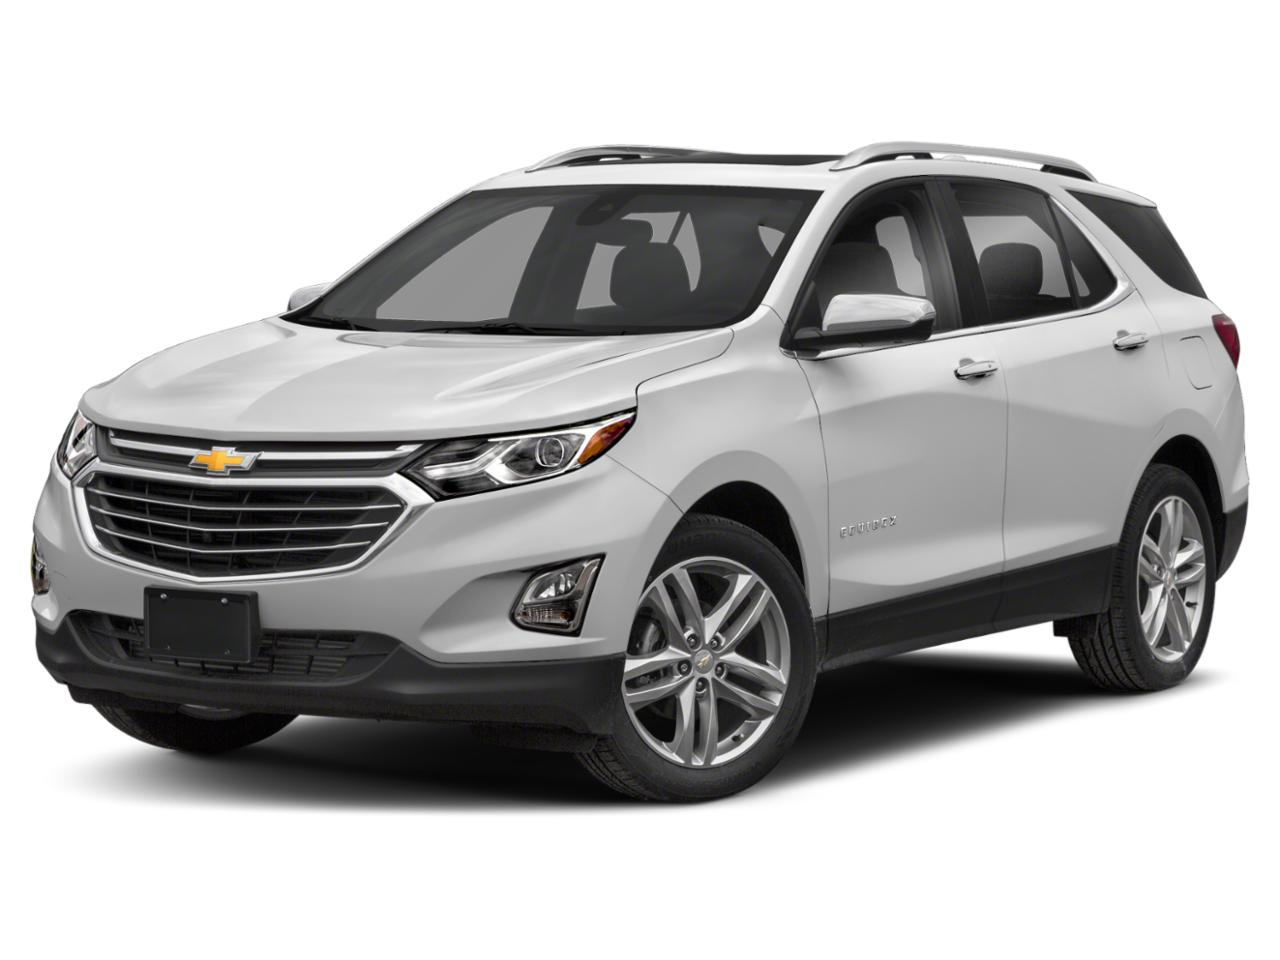 2020 Chevrolet Equinox Vehicle Photo in Greeley, CO 80634